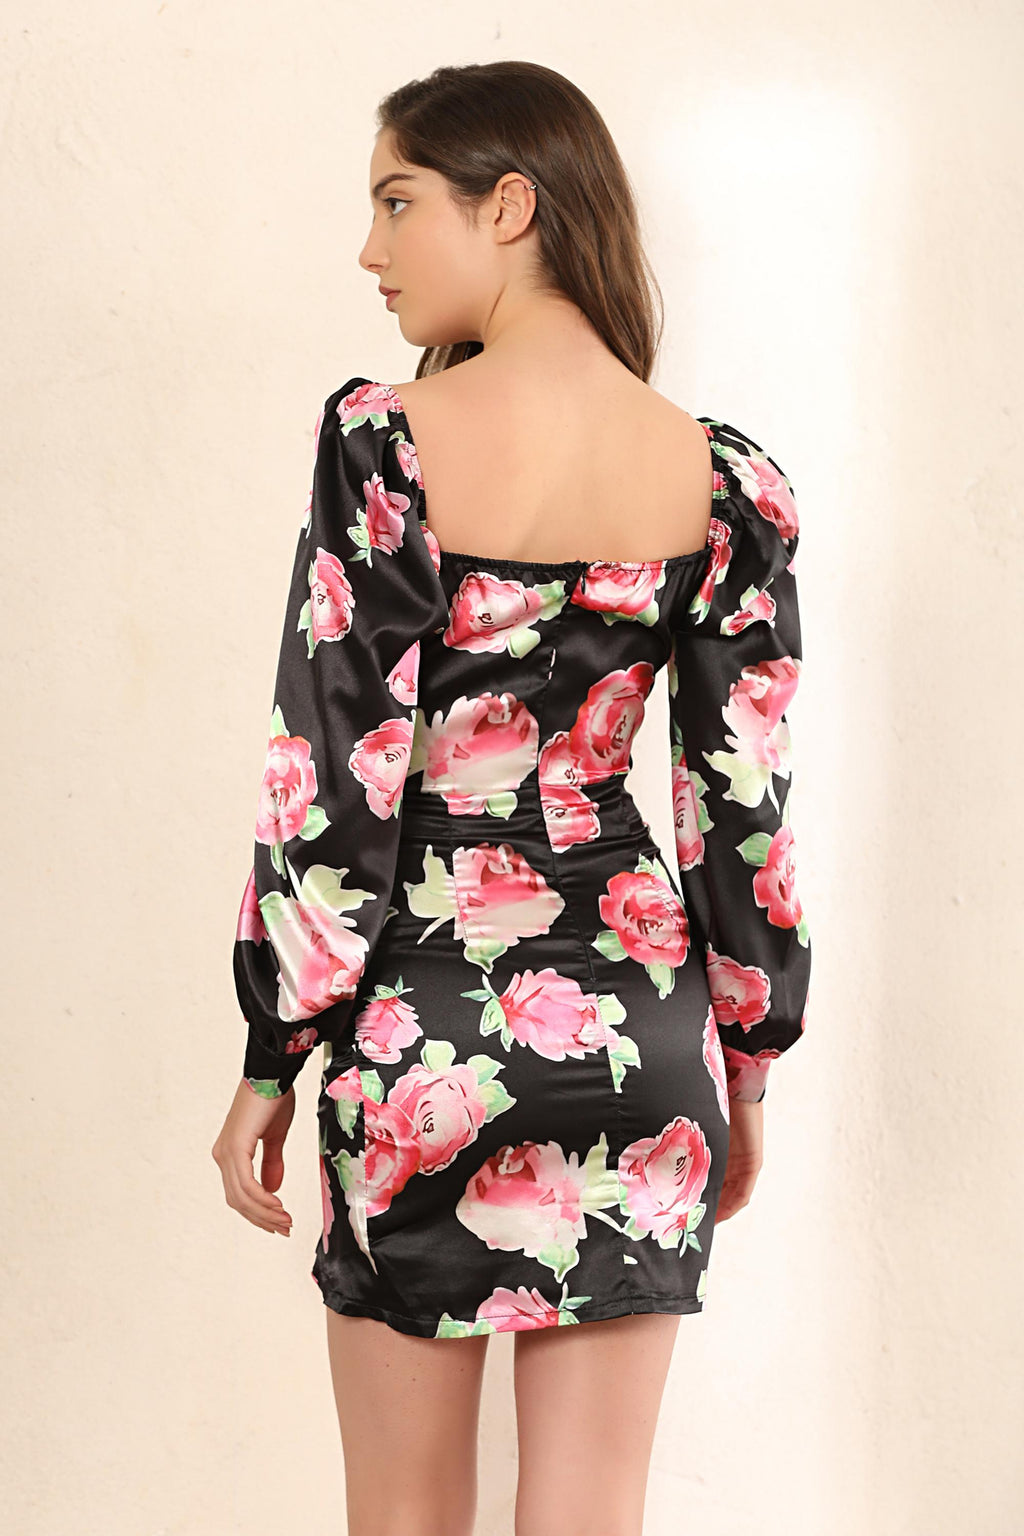 Floral Print Puff Shoulder Mini Dress In Black - Miss Floral